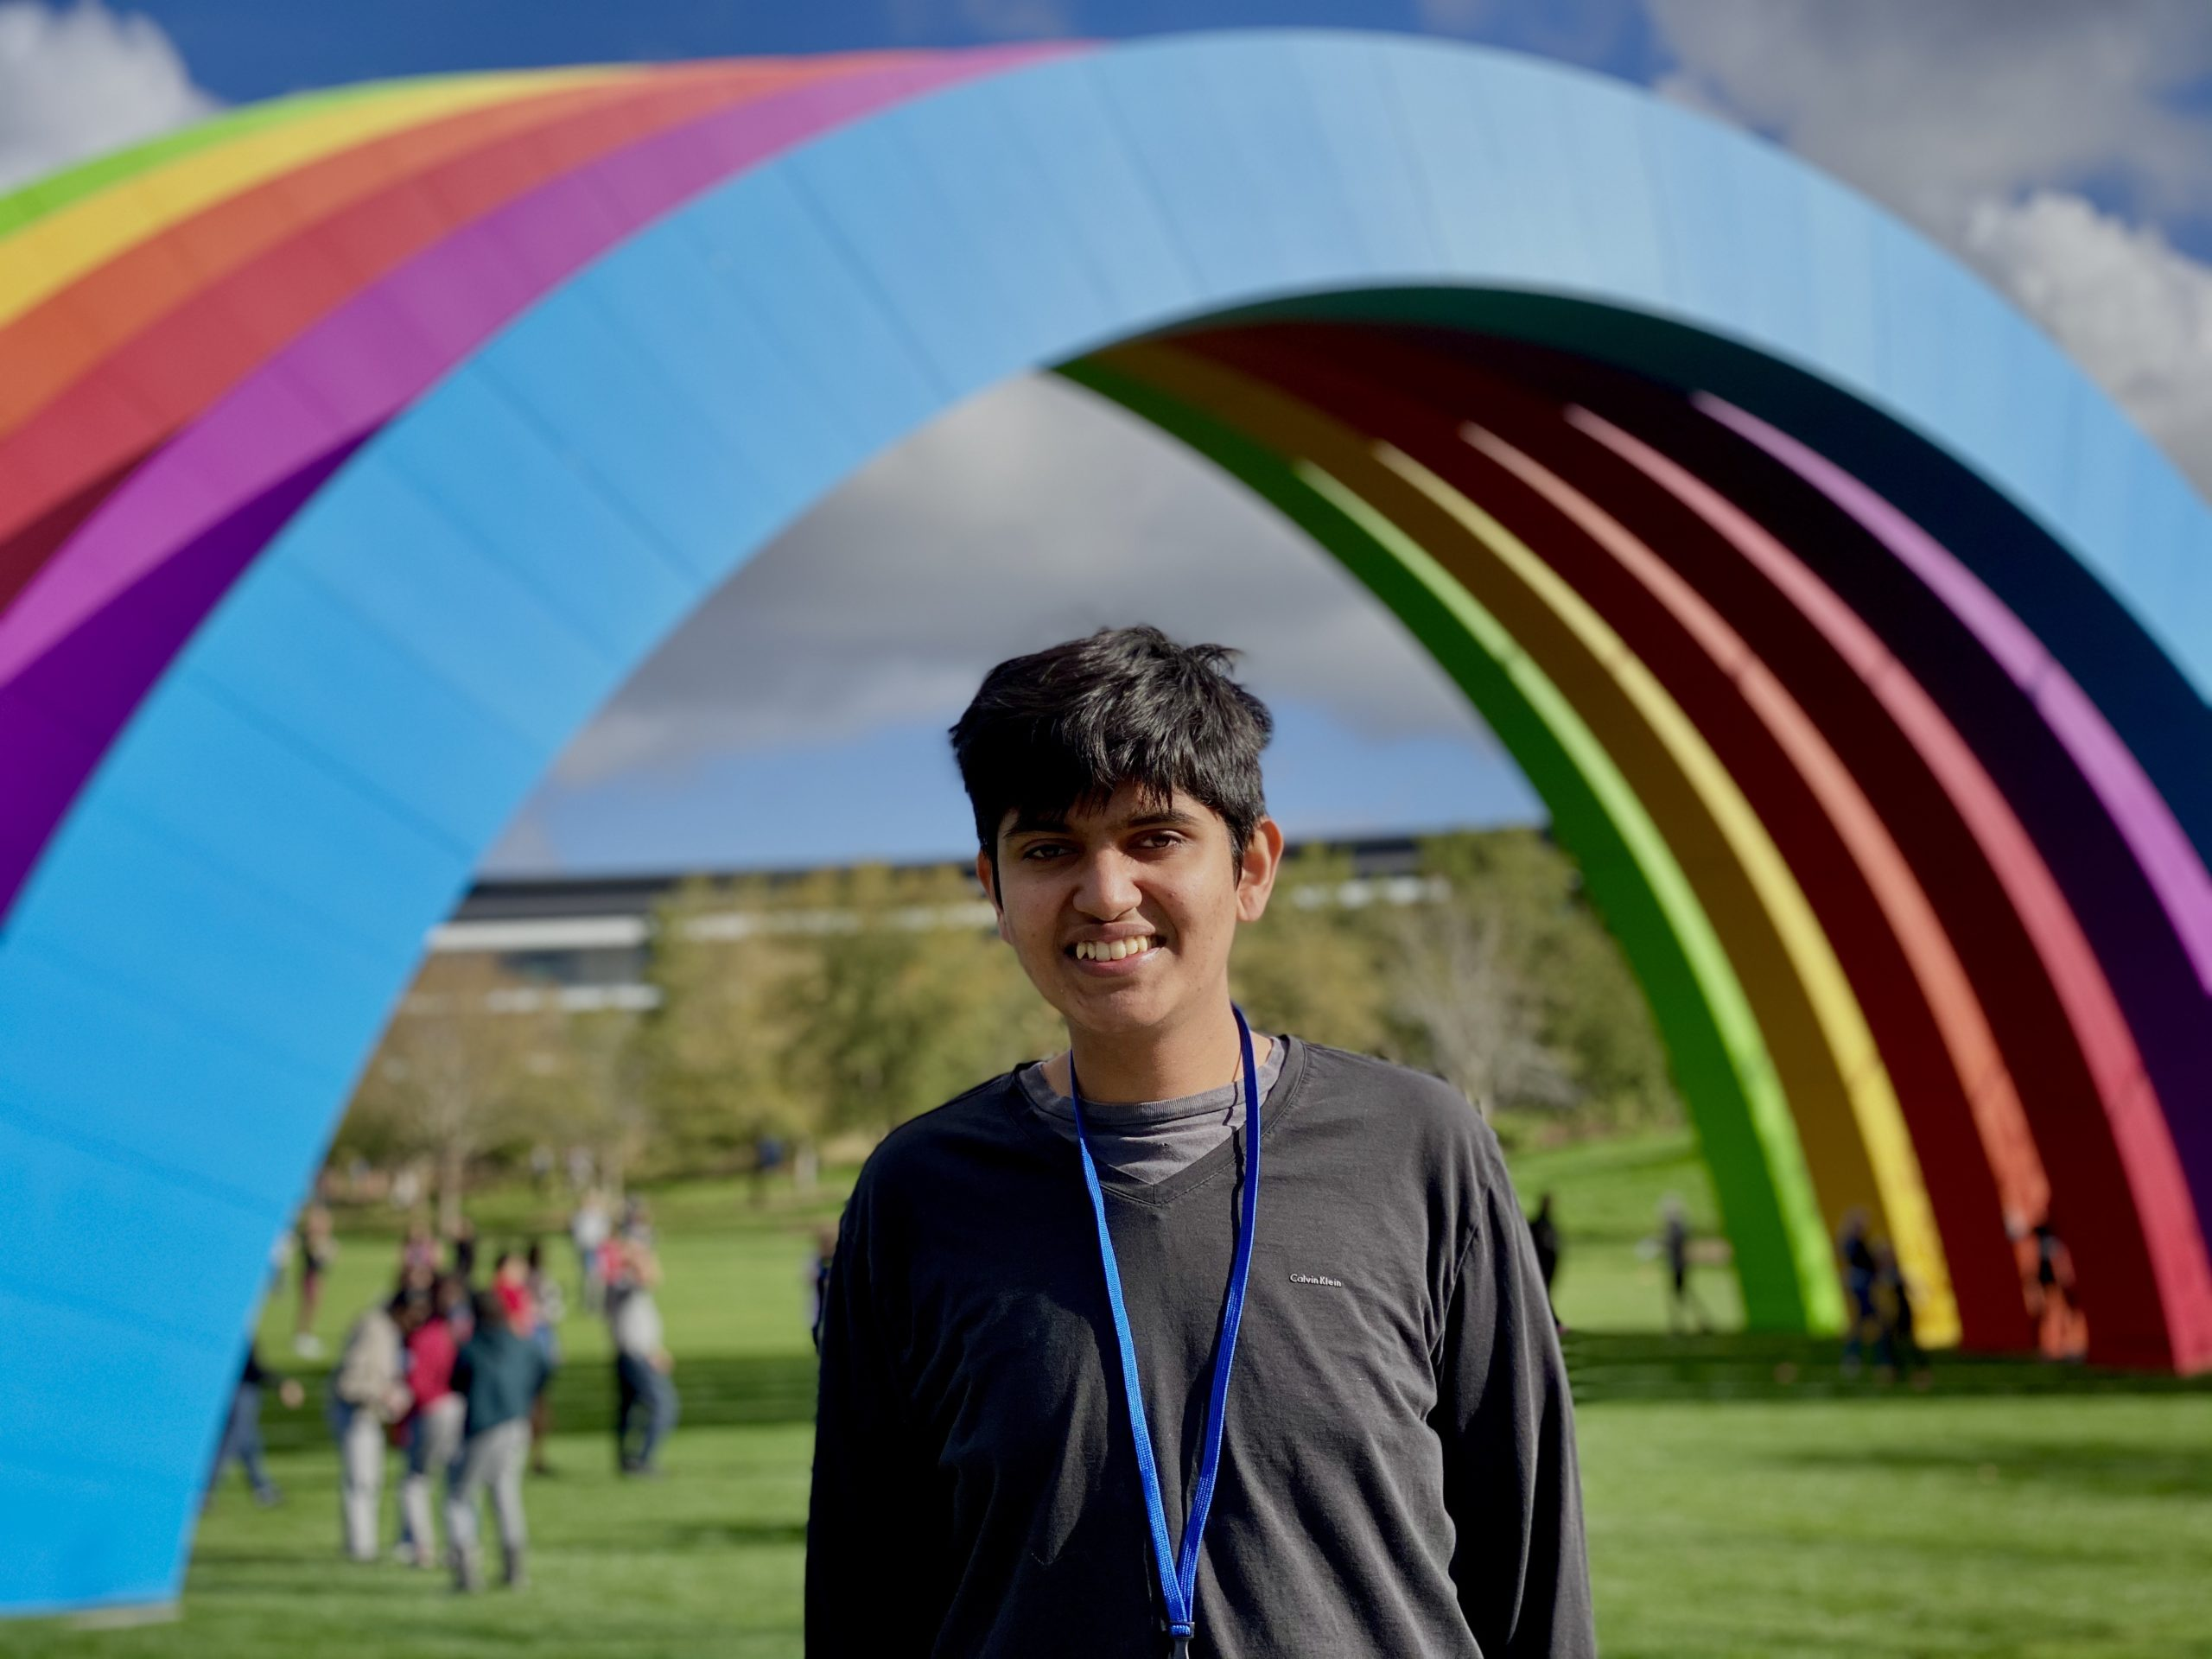 Vardhan Agrawal under the rainbow at the inside of Apple Park during an invite-only event